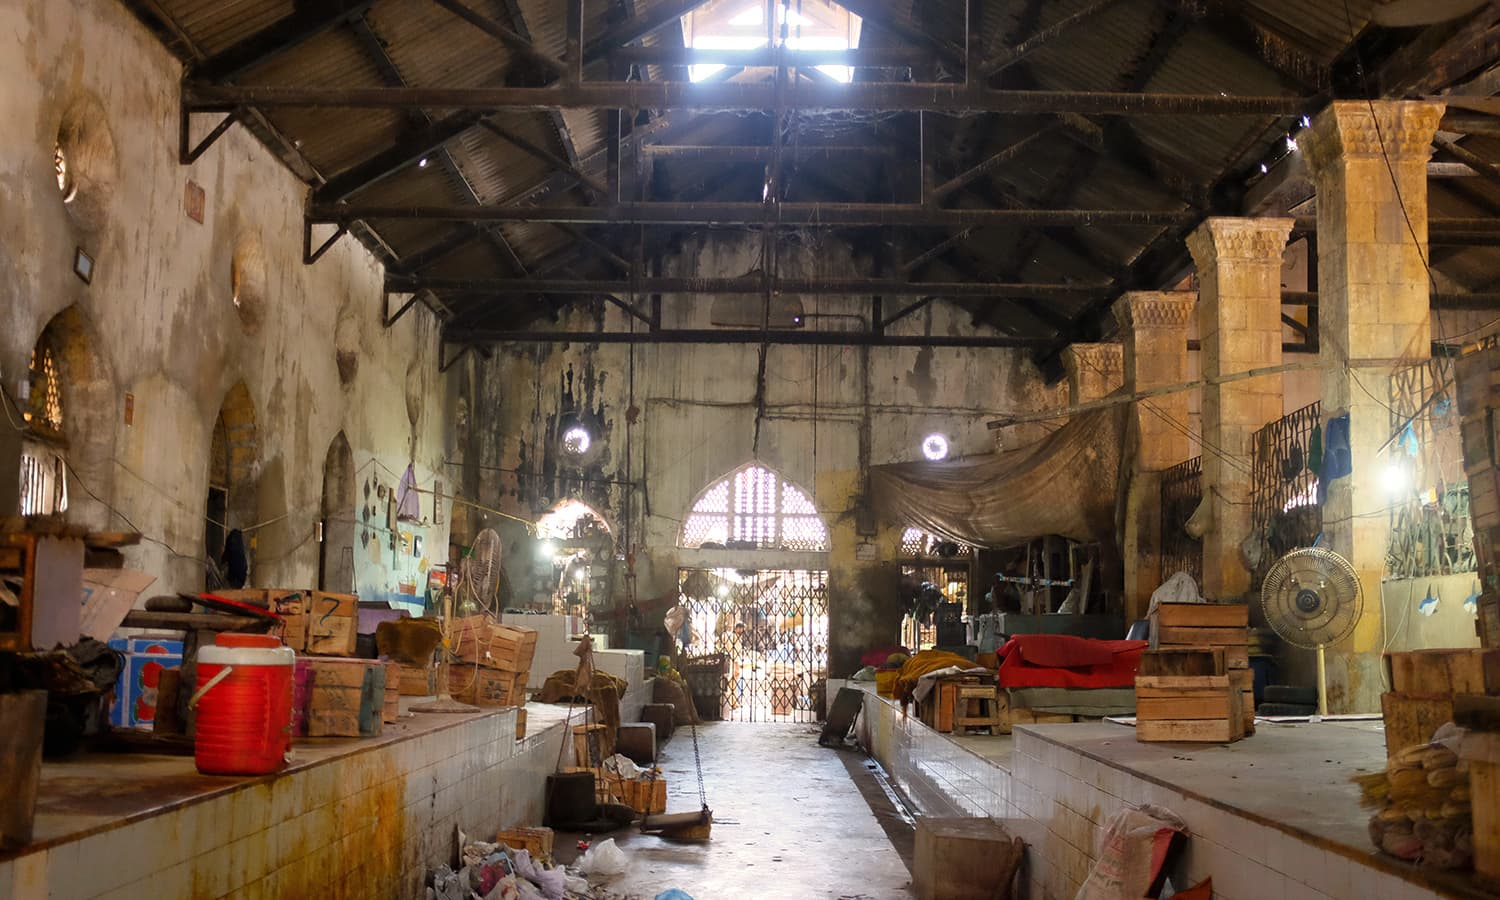 A view of one of the main halls inside the market.